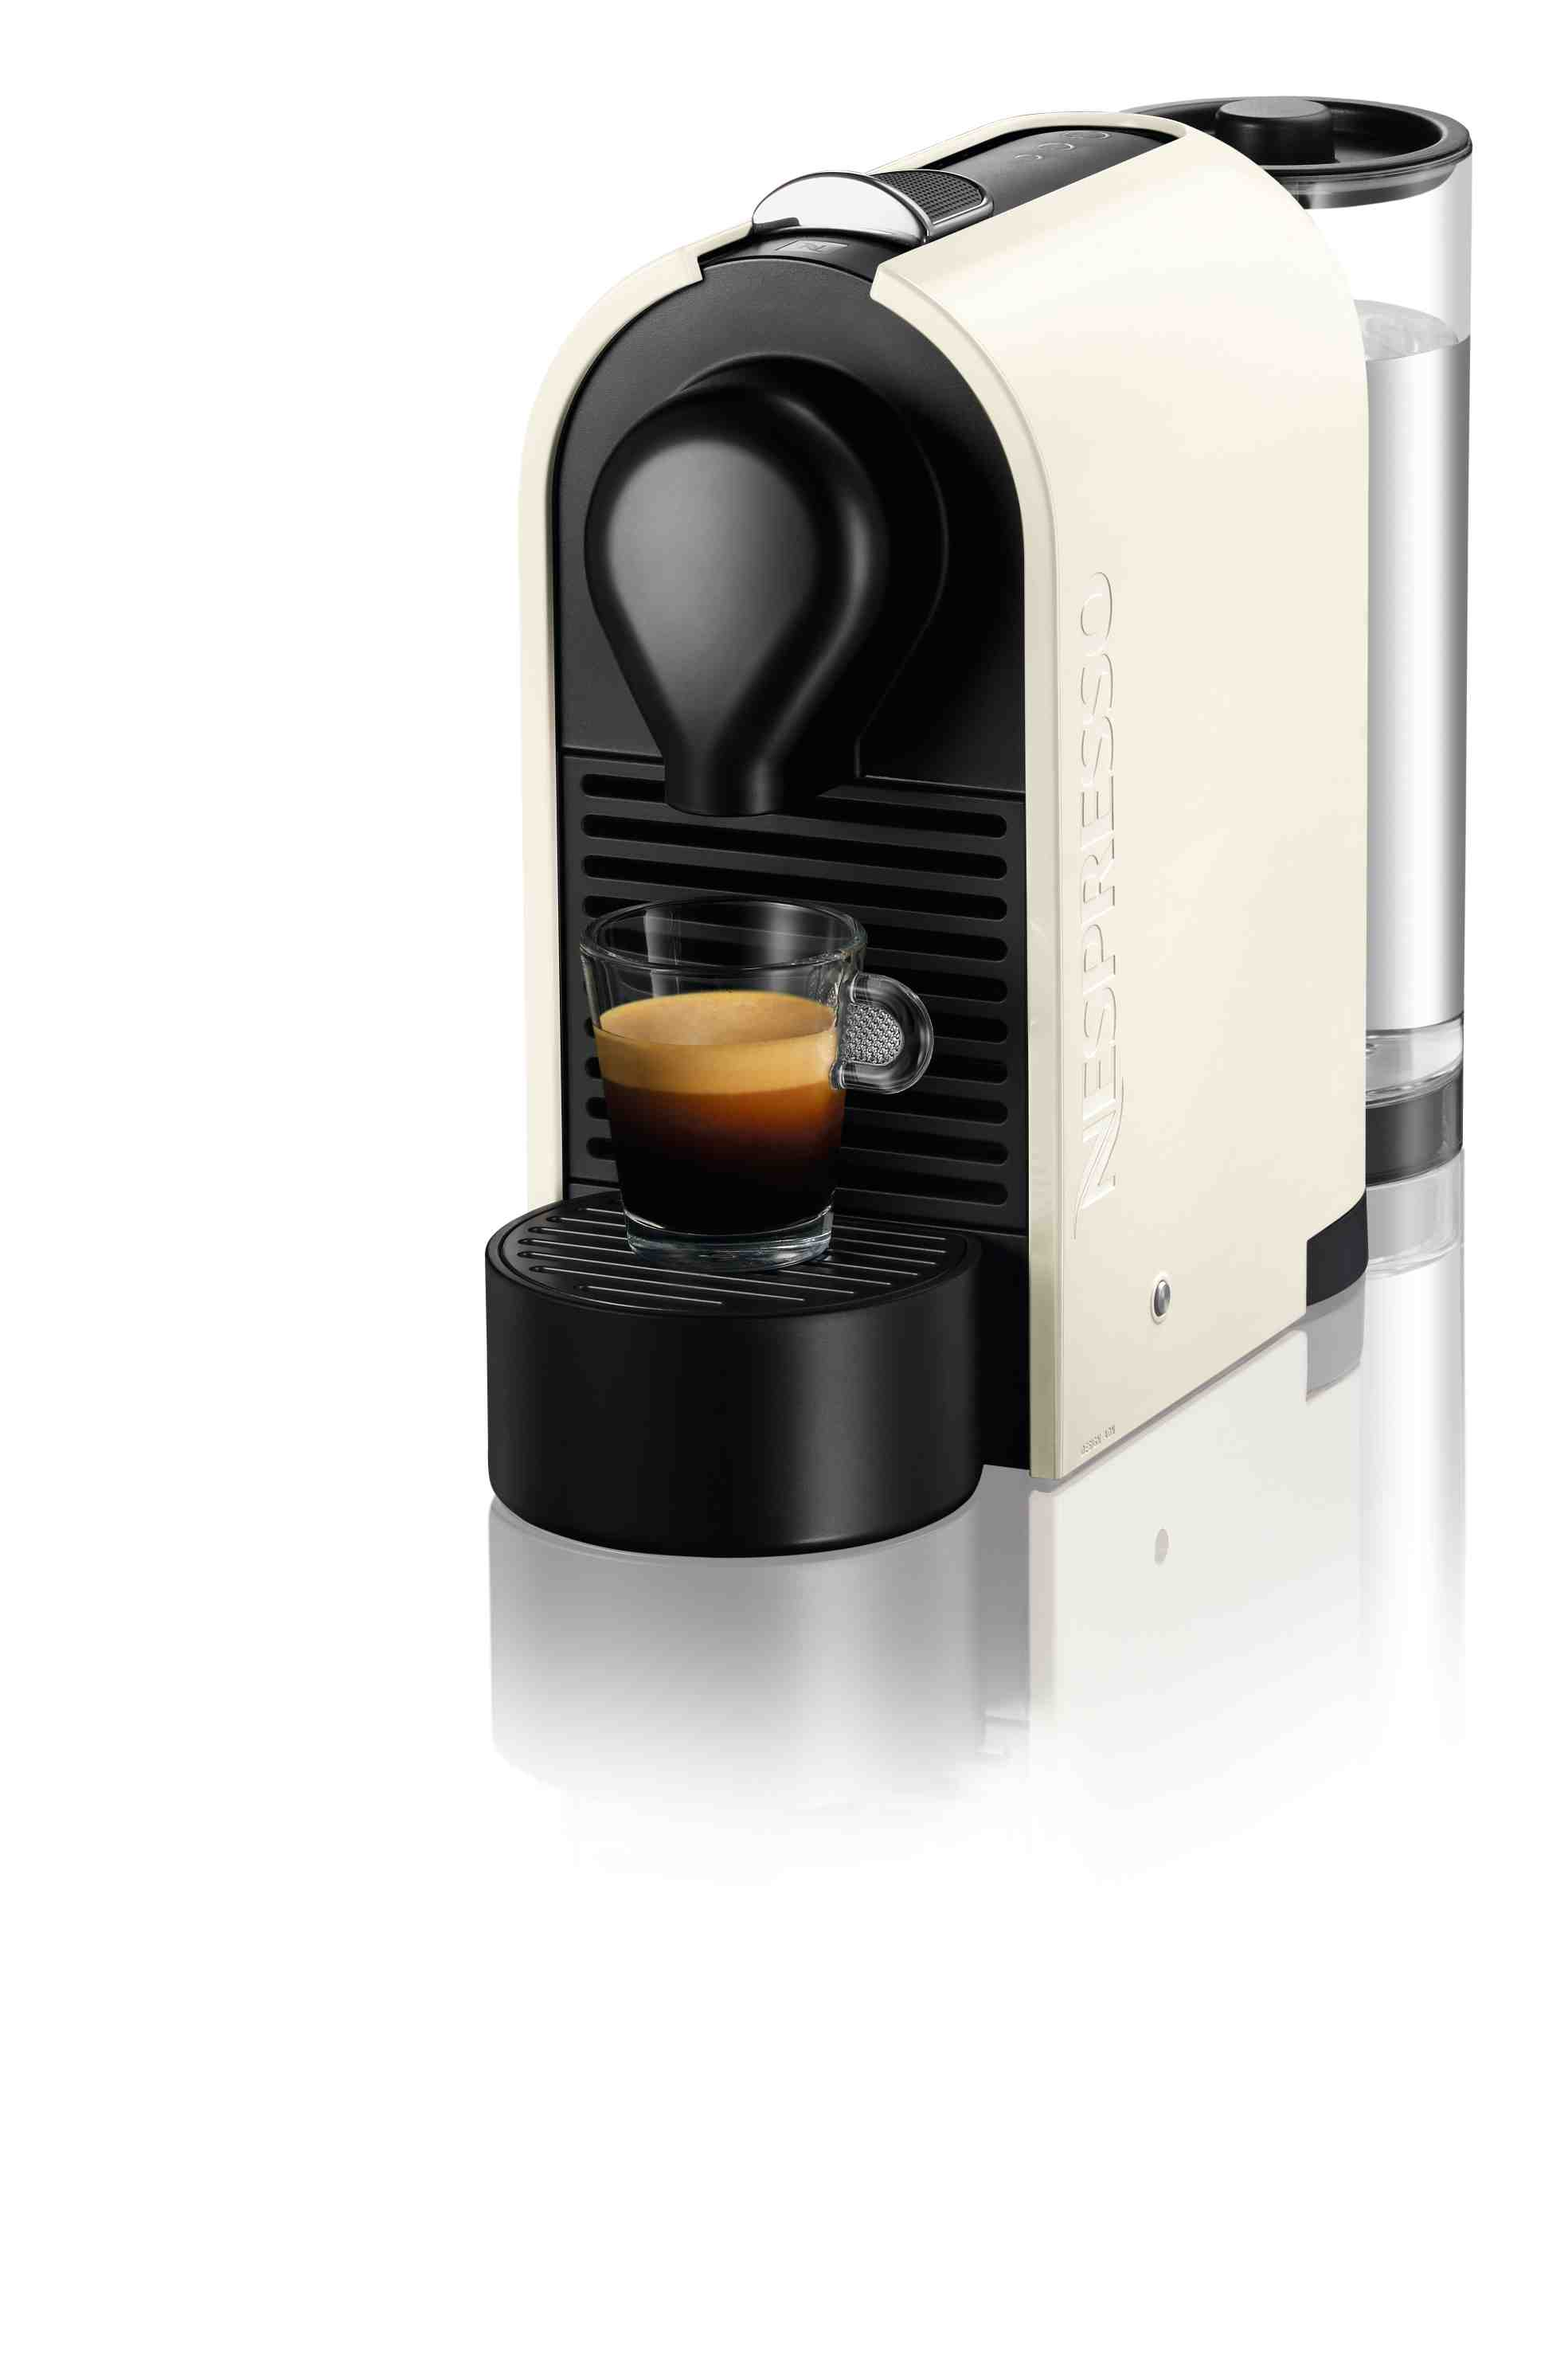 New entry level nespresso machine New coffee machine